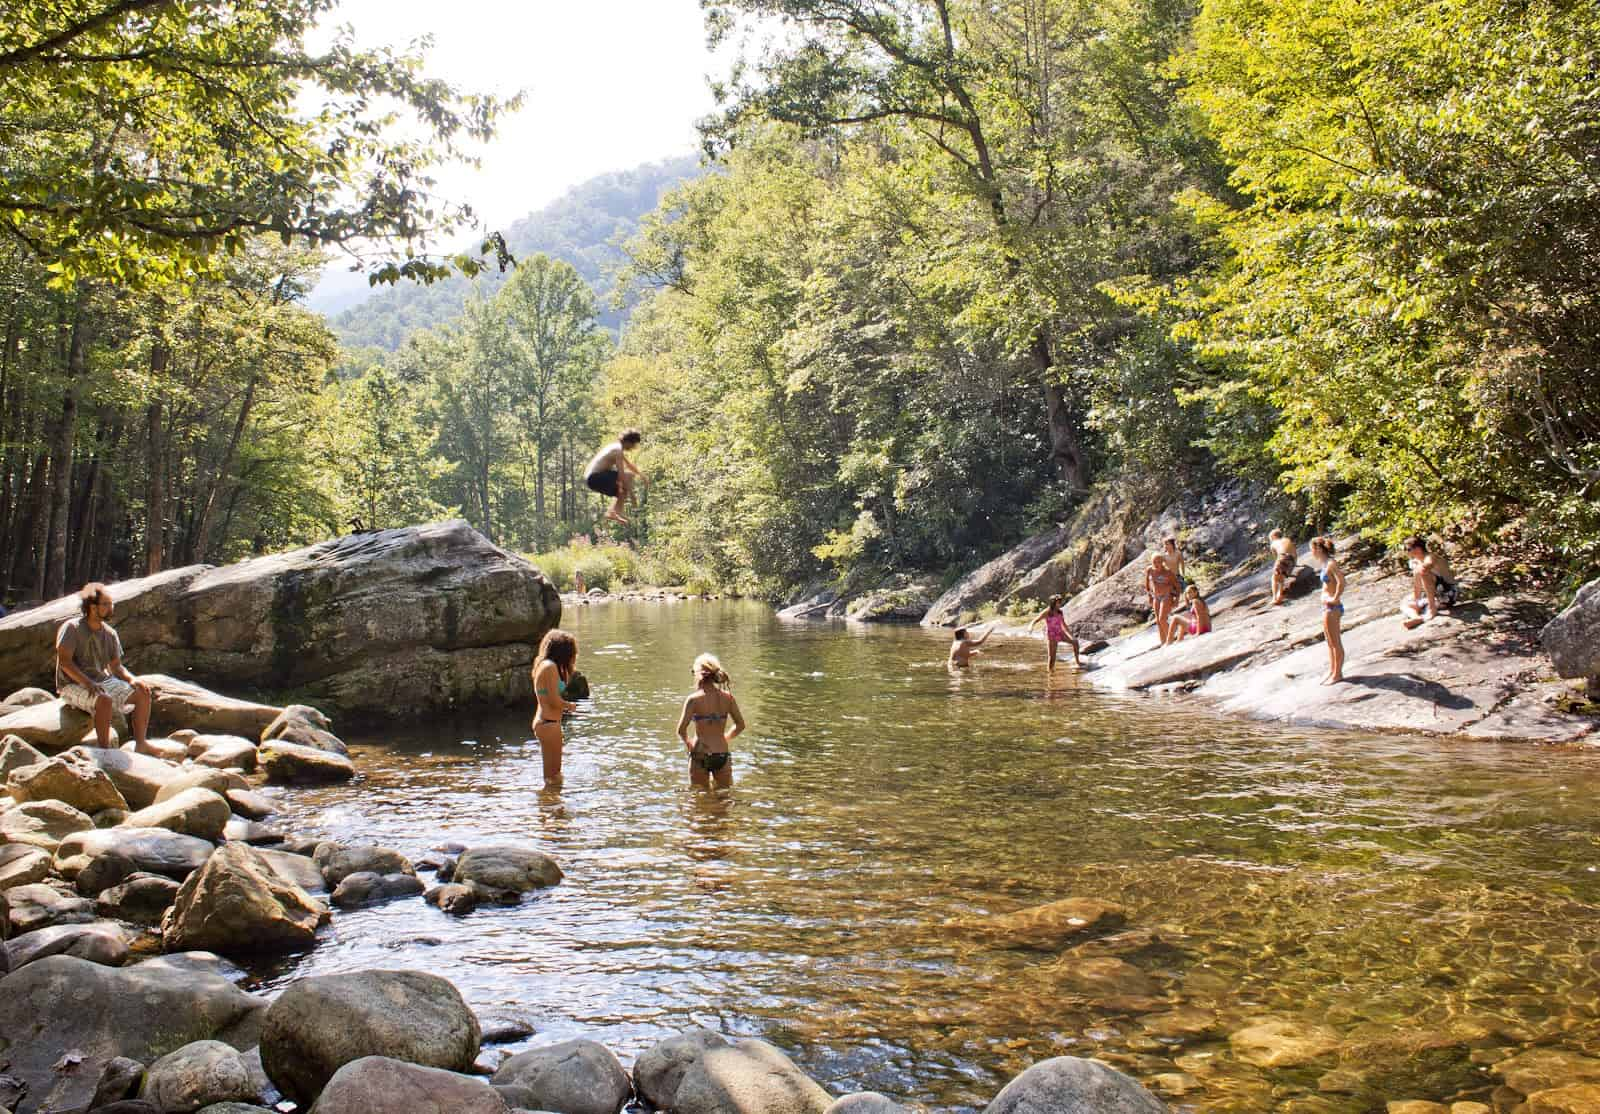 People jumping into river at Sunburst Swimming Hole